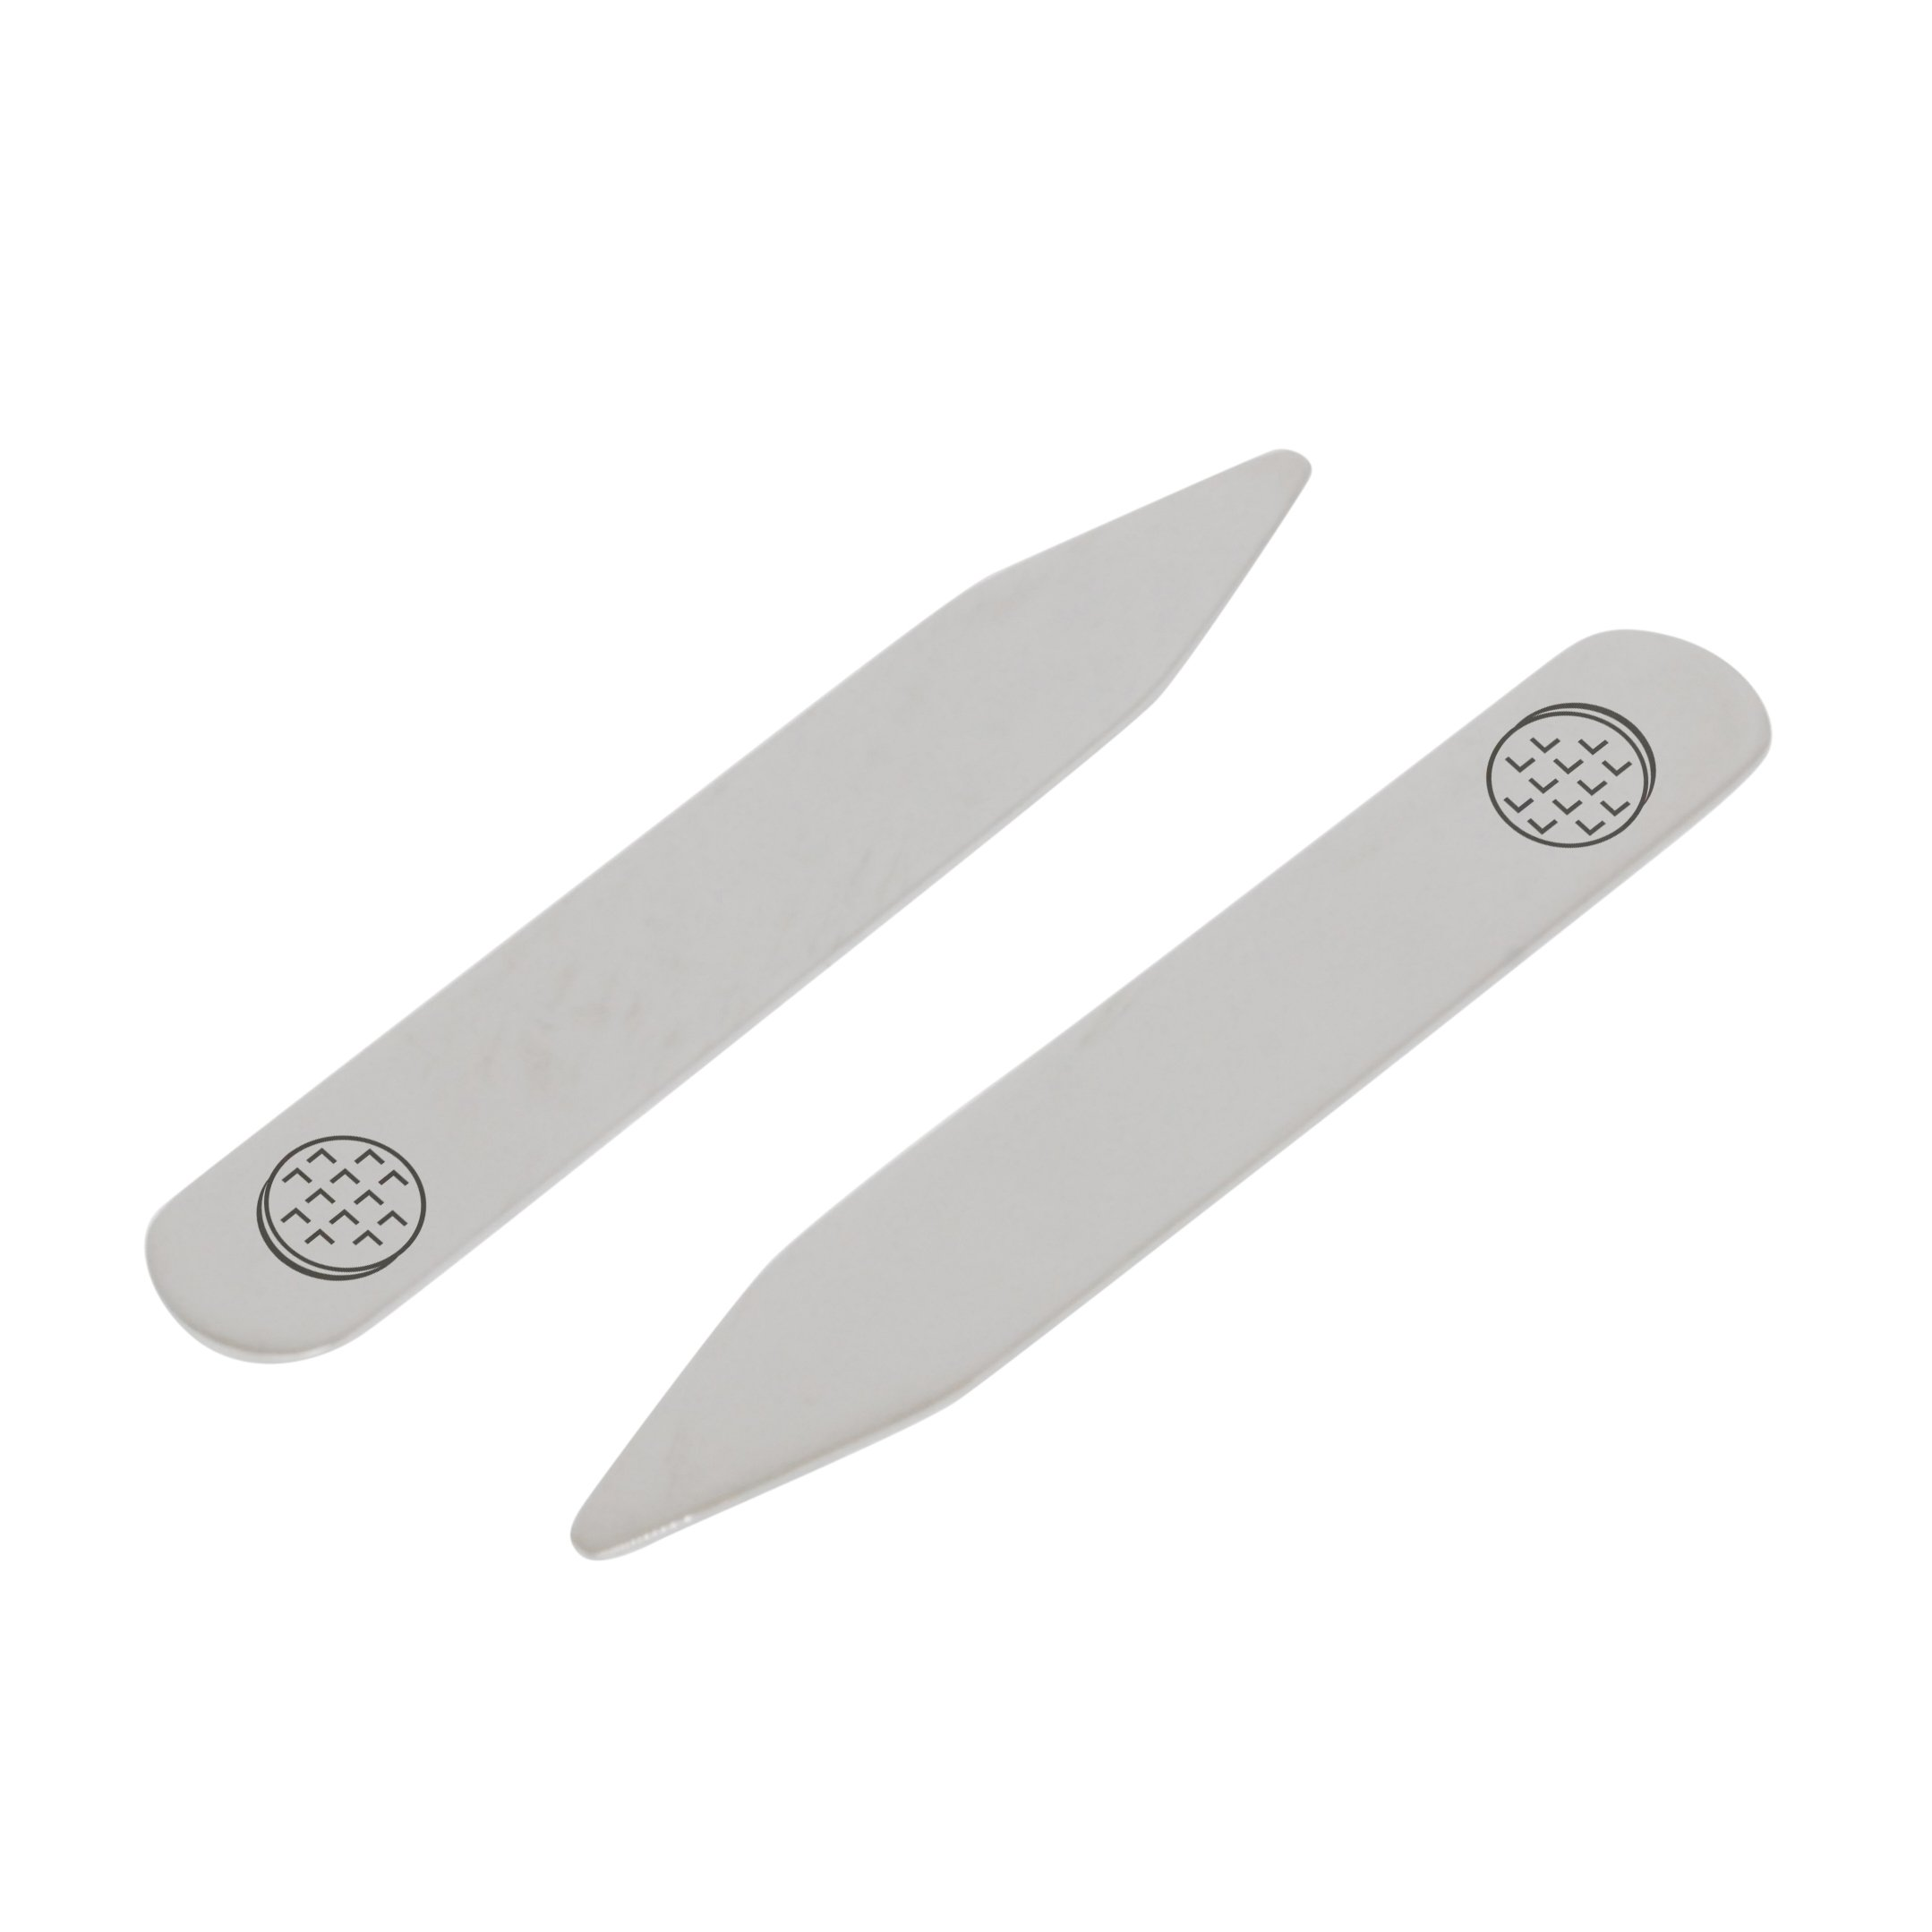 MODERN GOODS SHOP Stainless Steel Collar Stays With Laser Engraved Waffle Design - 2.5 Inch Metal Collar Stiffeners - Made In USA